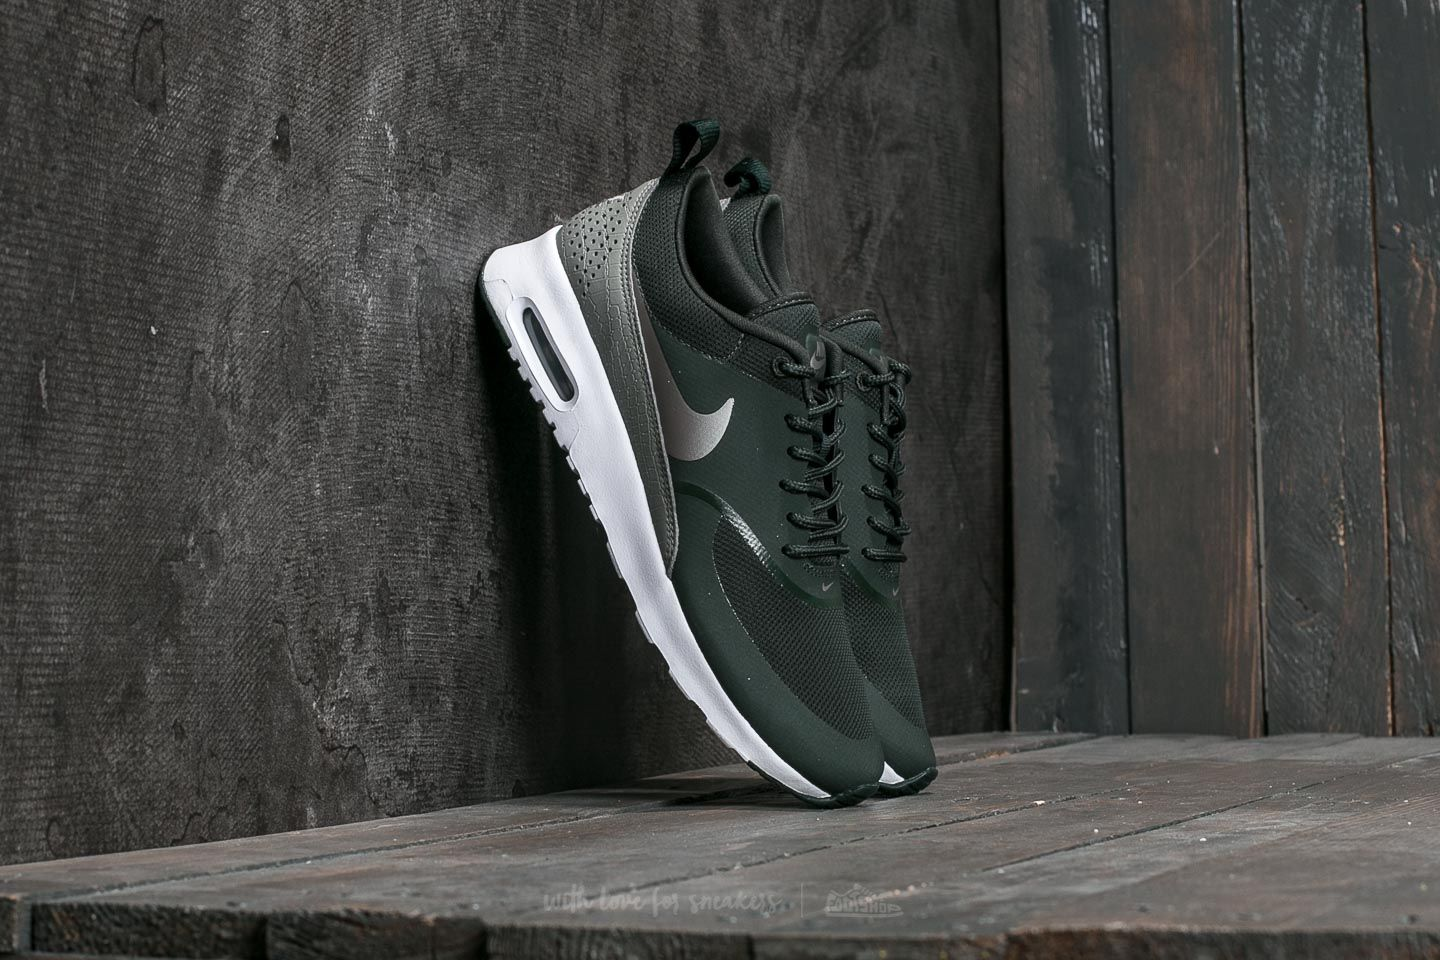 new product 1e990 d4dc4 ... black white 98a7e 78b06 greece nike w air max thea outdoor green metallic  pewter at a great price 103 c5998 ...